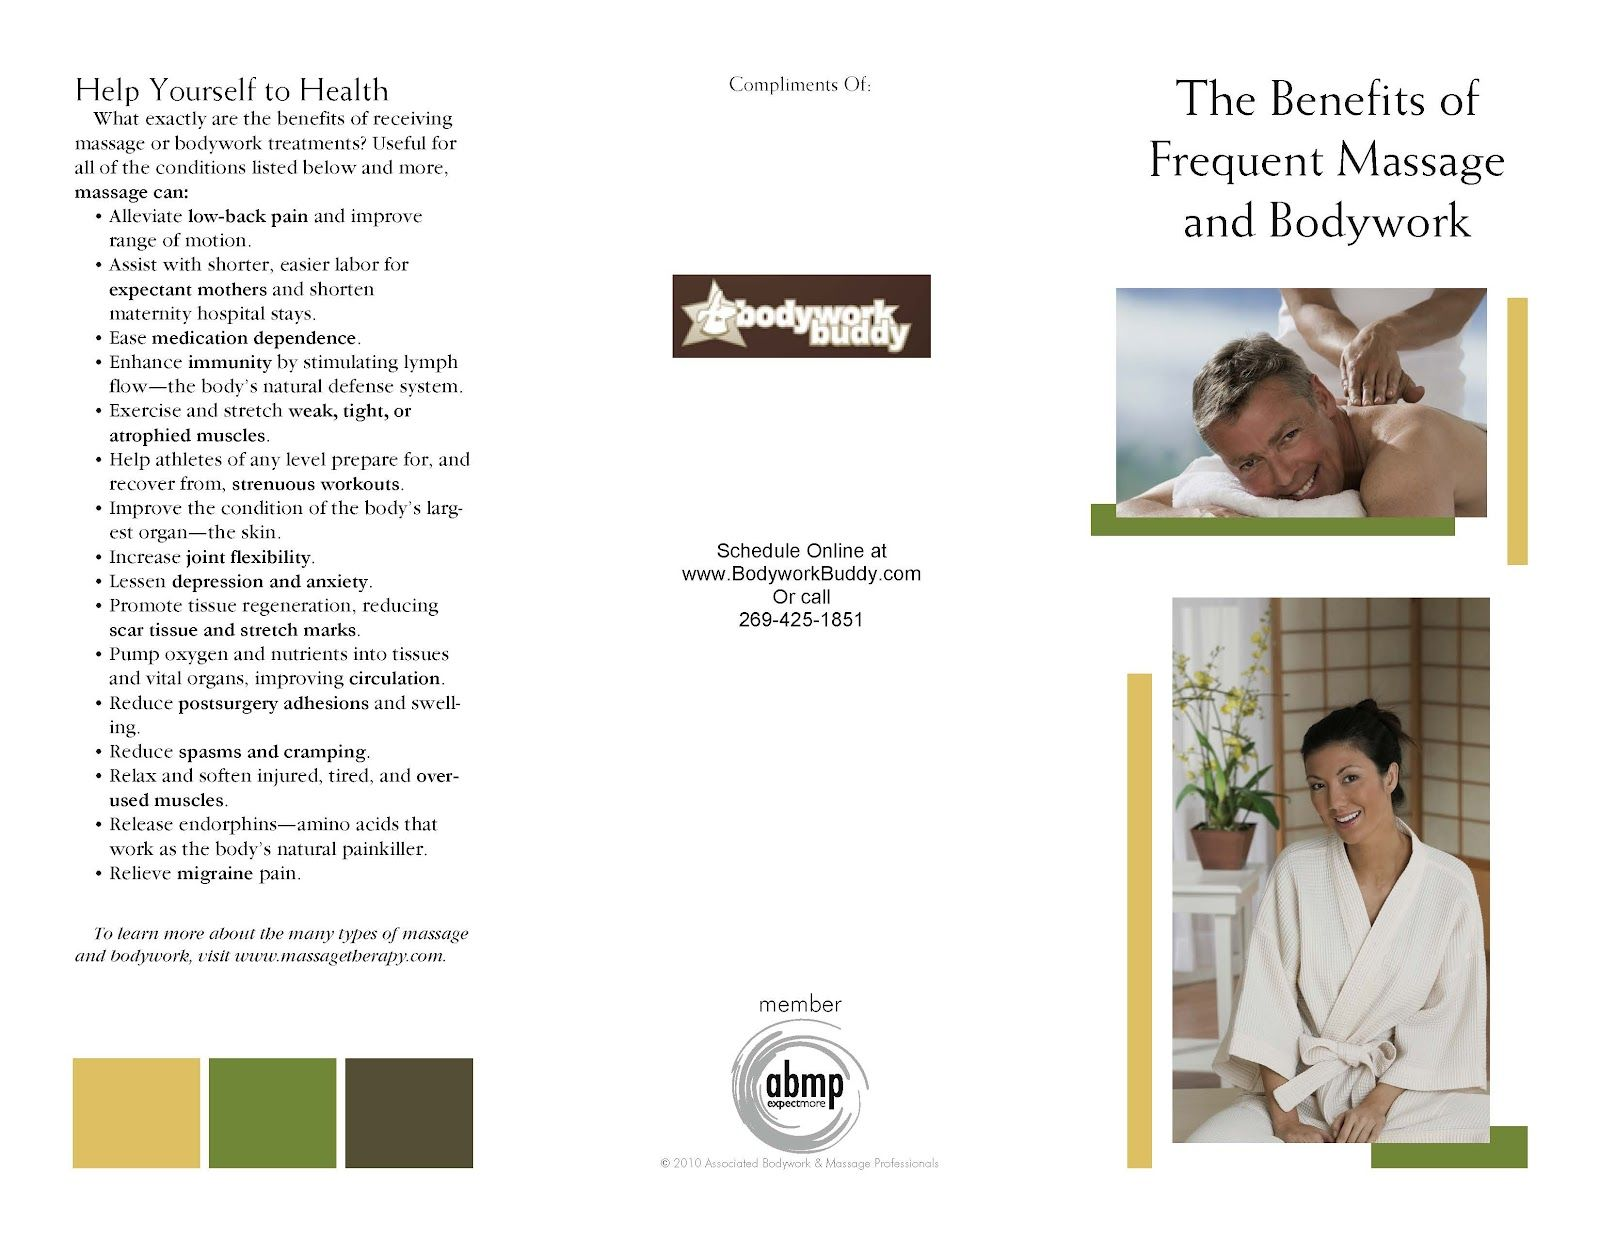 Create Free Massage Brochures With ABMP | Marketing Massage and ...